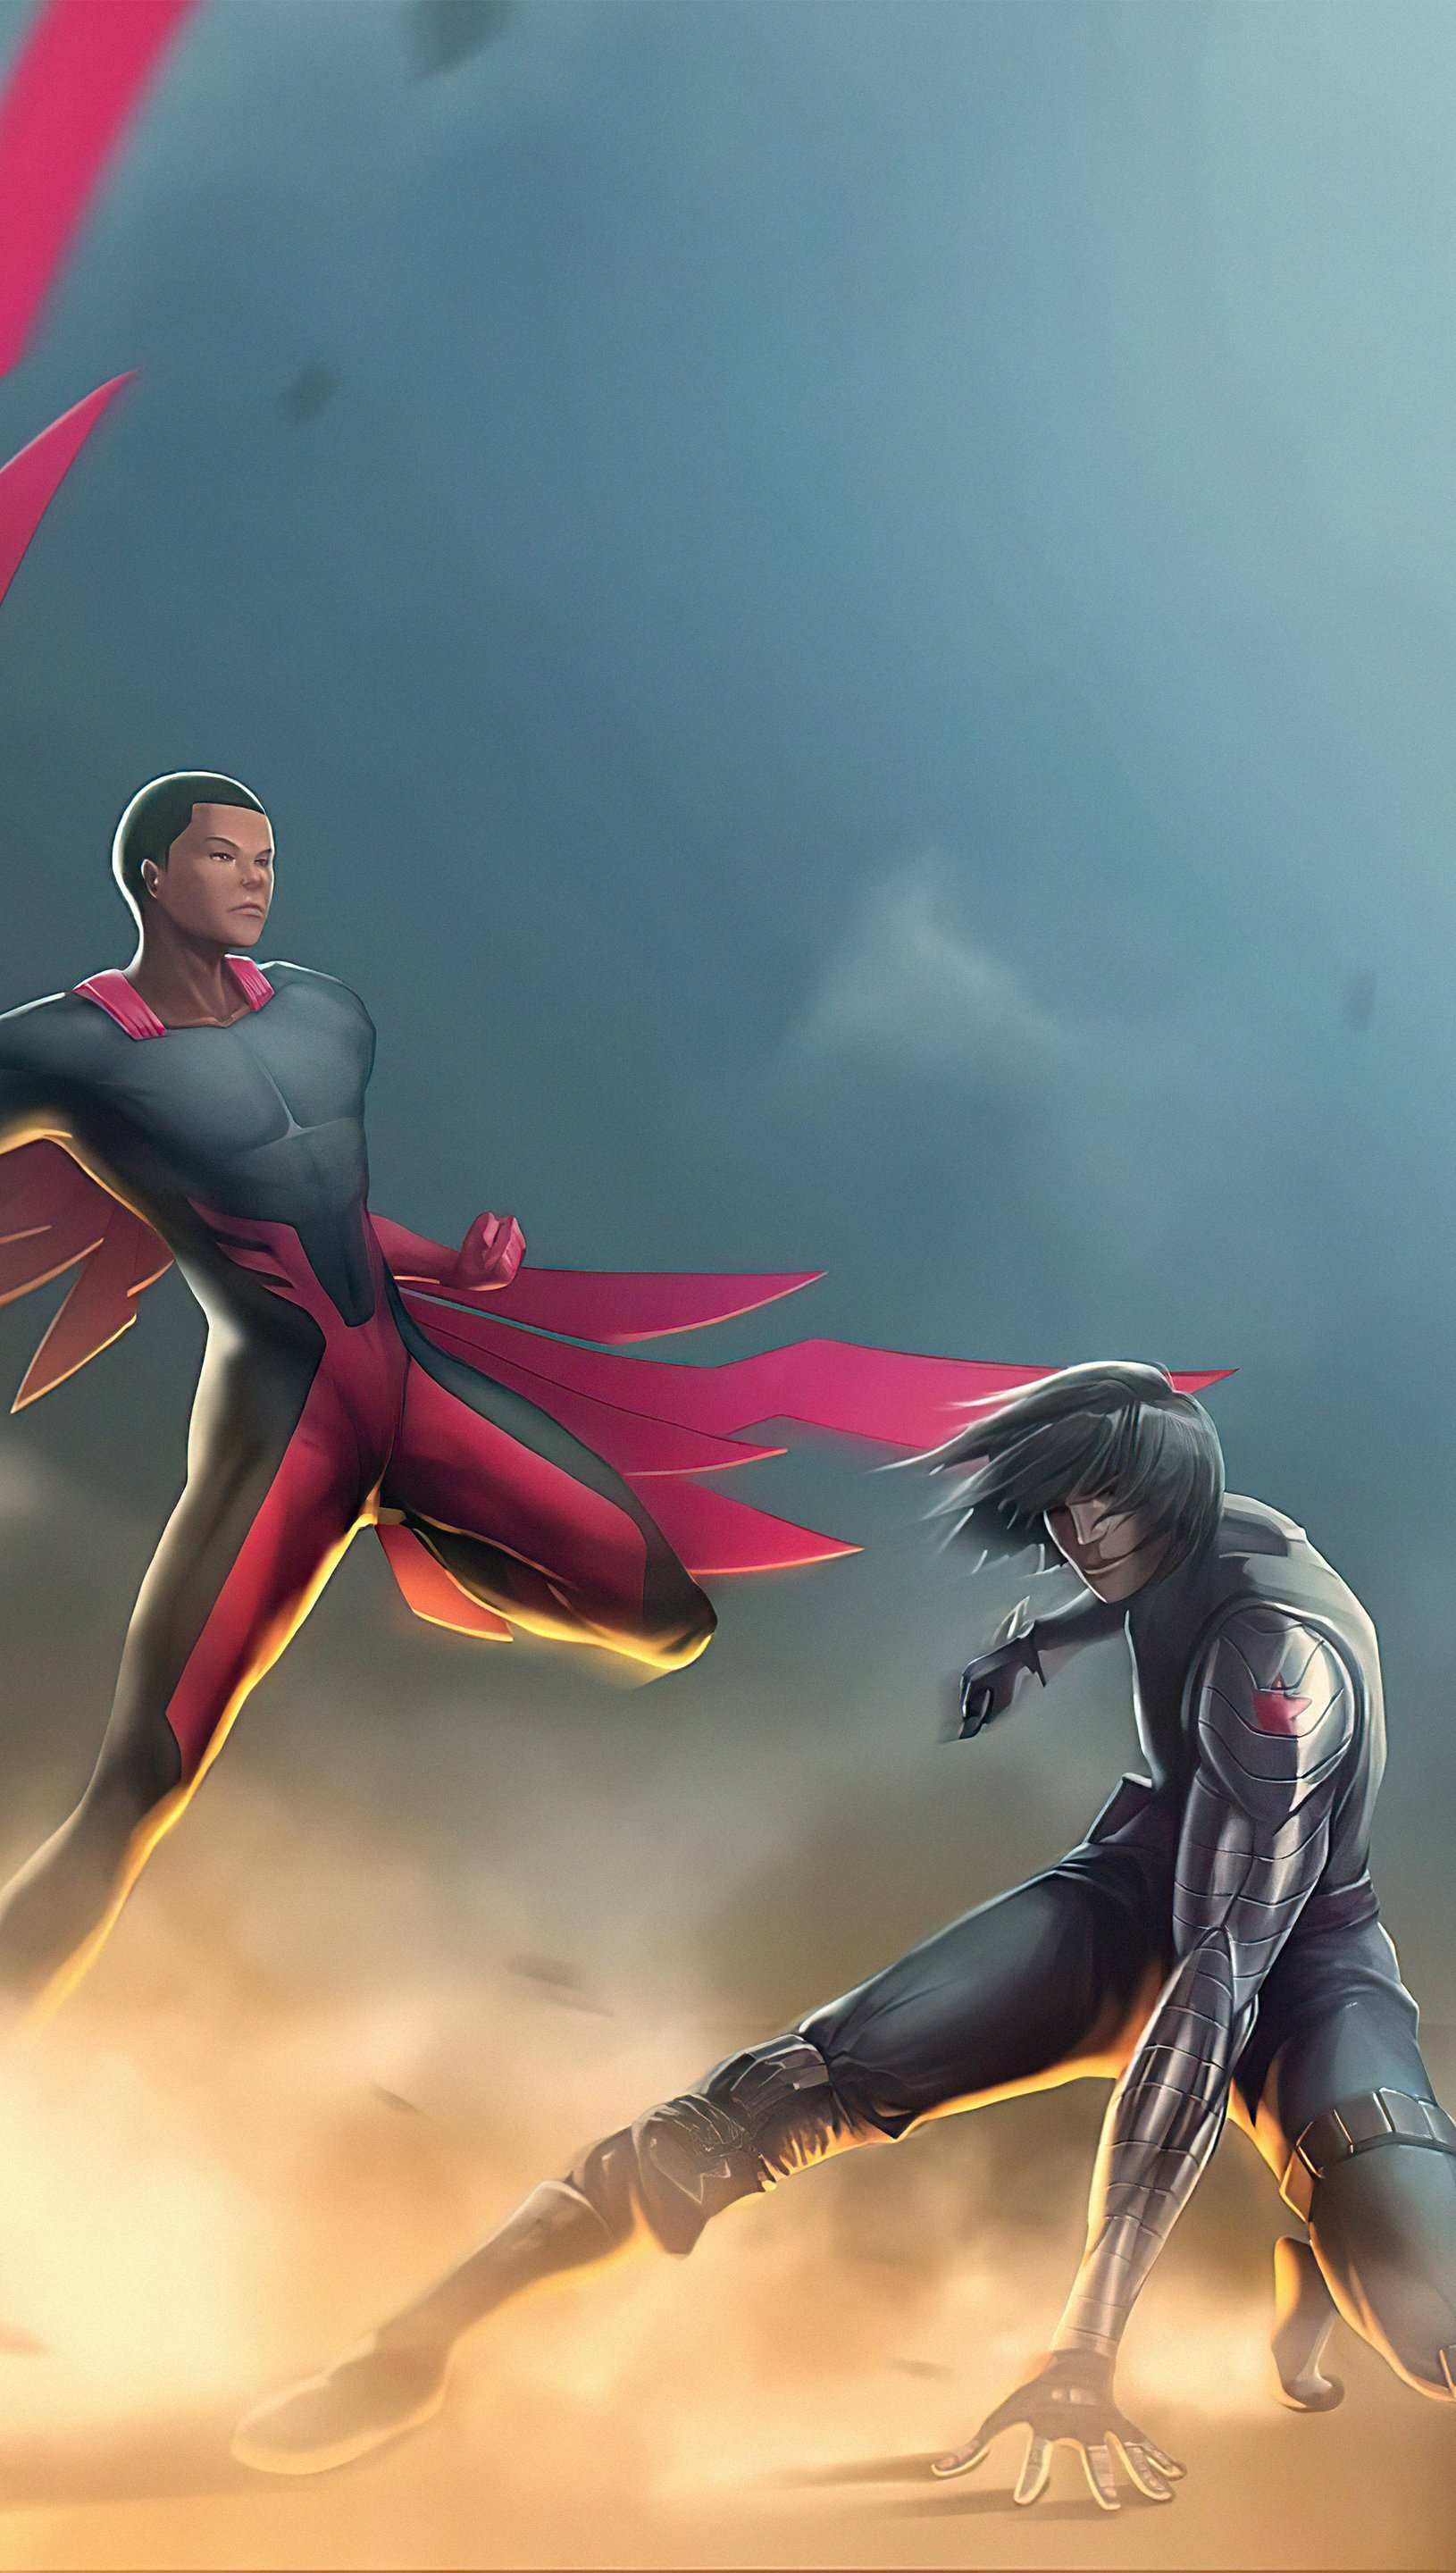 Wallpaper Falcon and the winter soldier Vertical